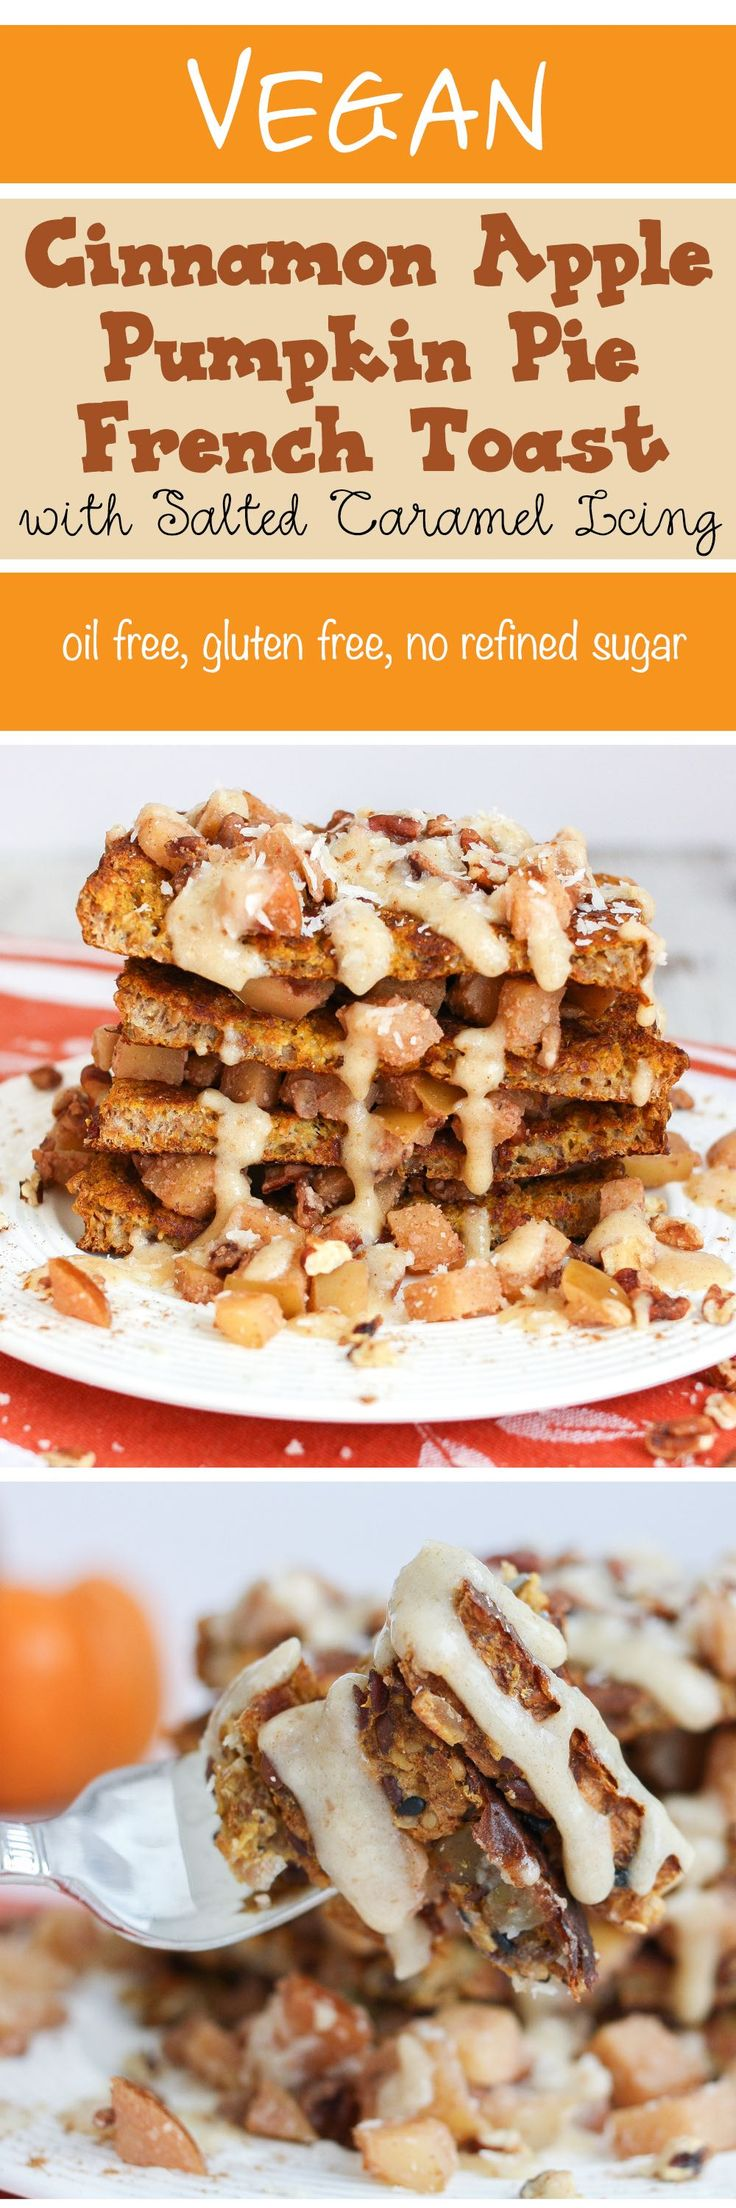 I've been working on a French toast recipe for a while now, it's been a back burner kind of thing that comes back every once in a while. But a few weekends ago, when my hubby didn't feel like takin...